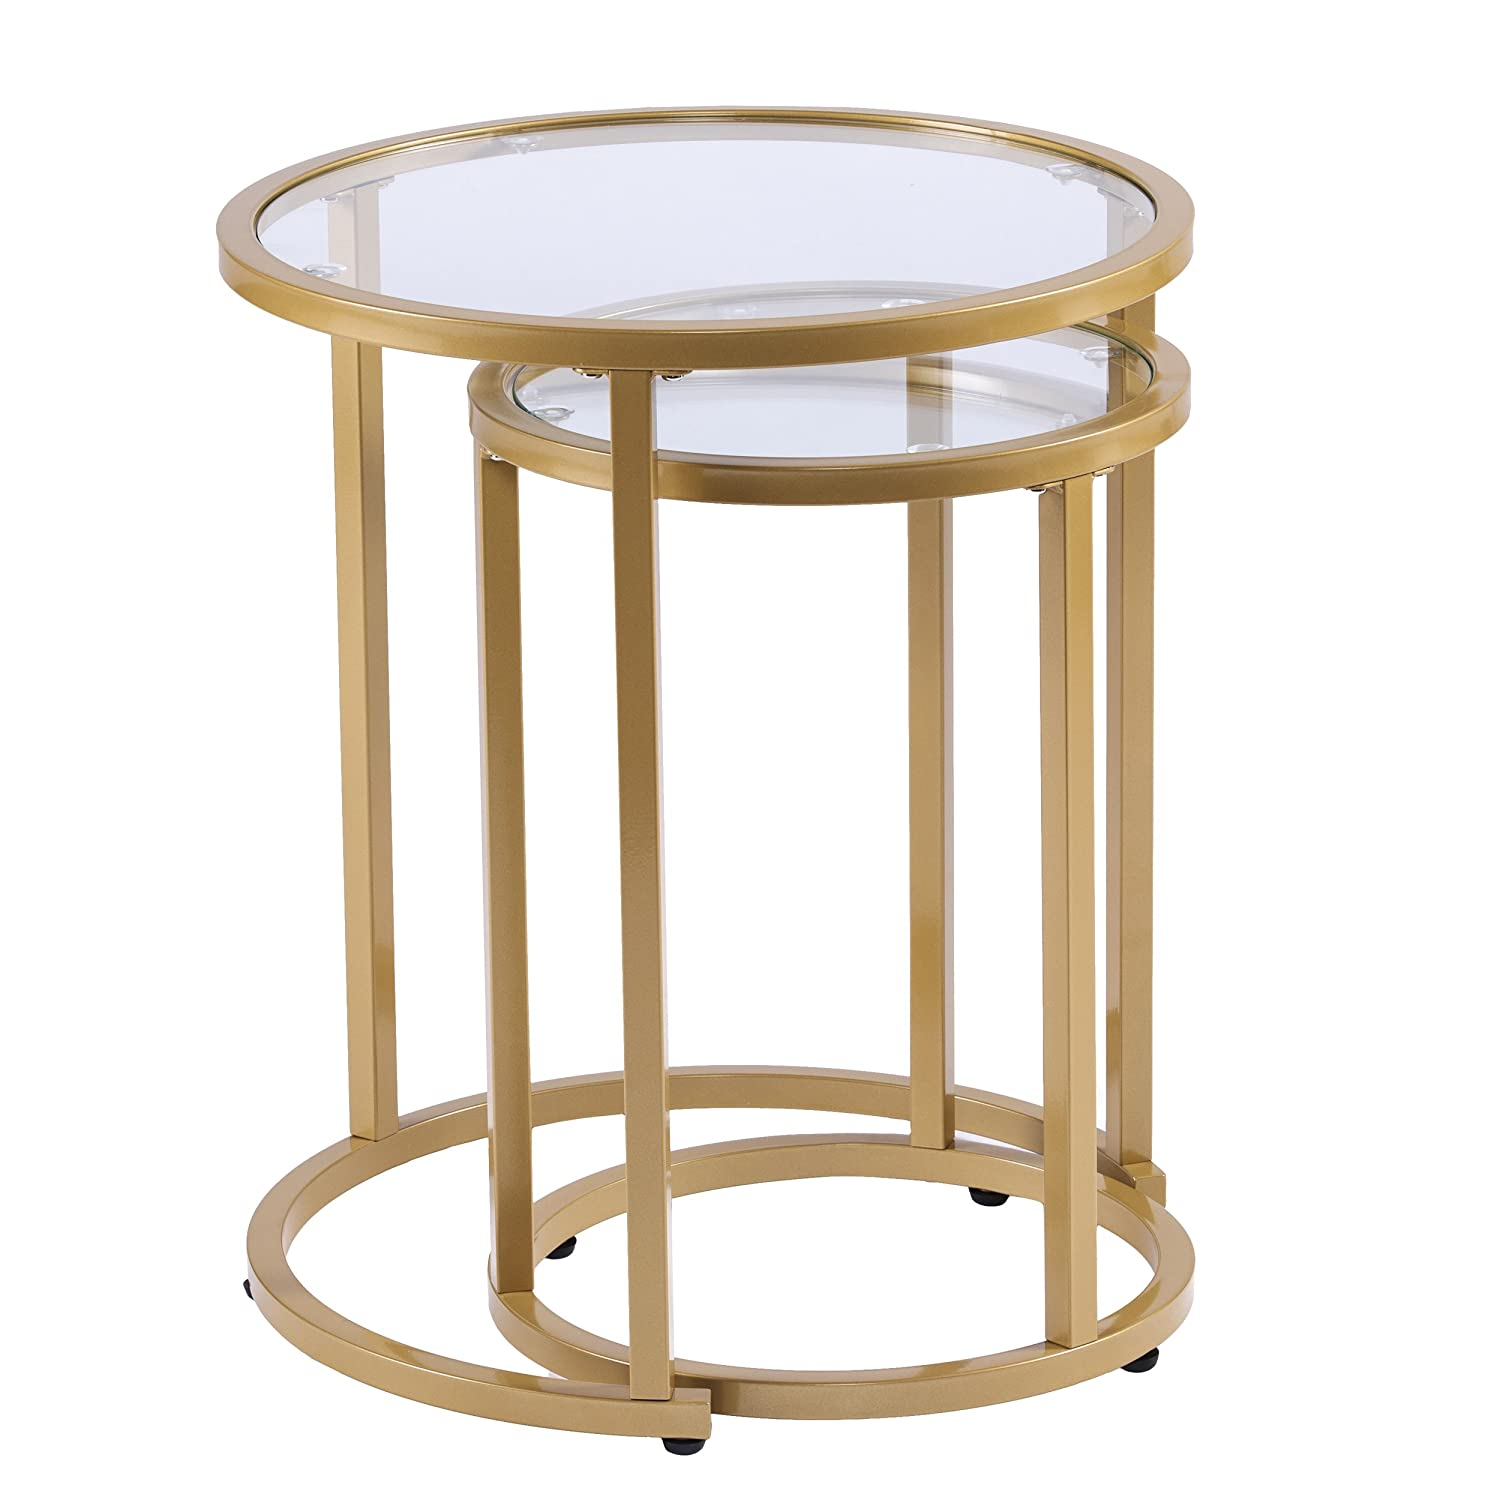 Furniture HotSpot – Gold Nesting End Tables – Round - 2 Pc - 19.5